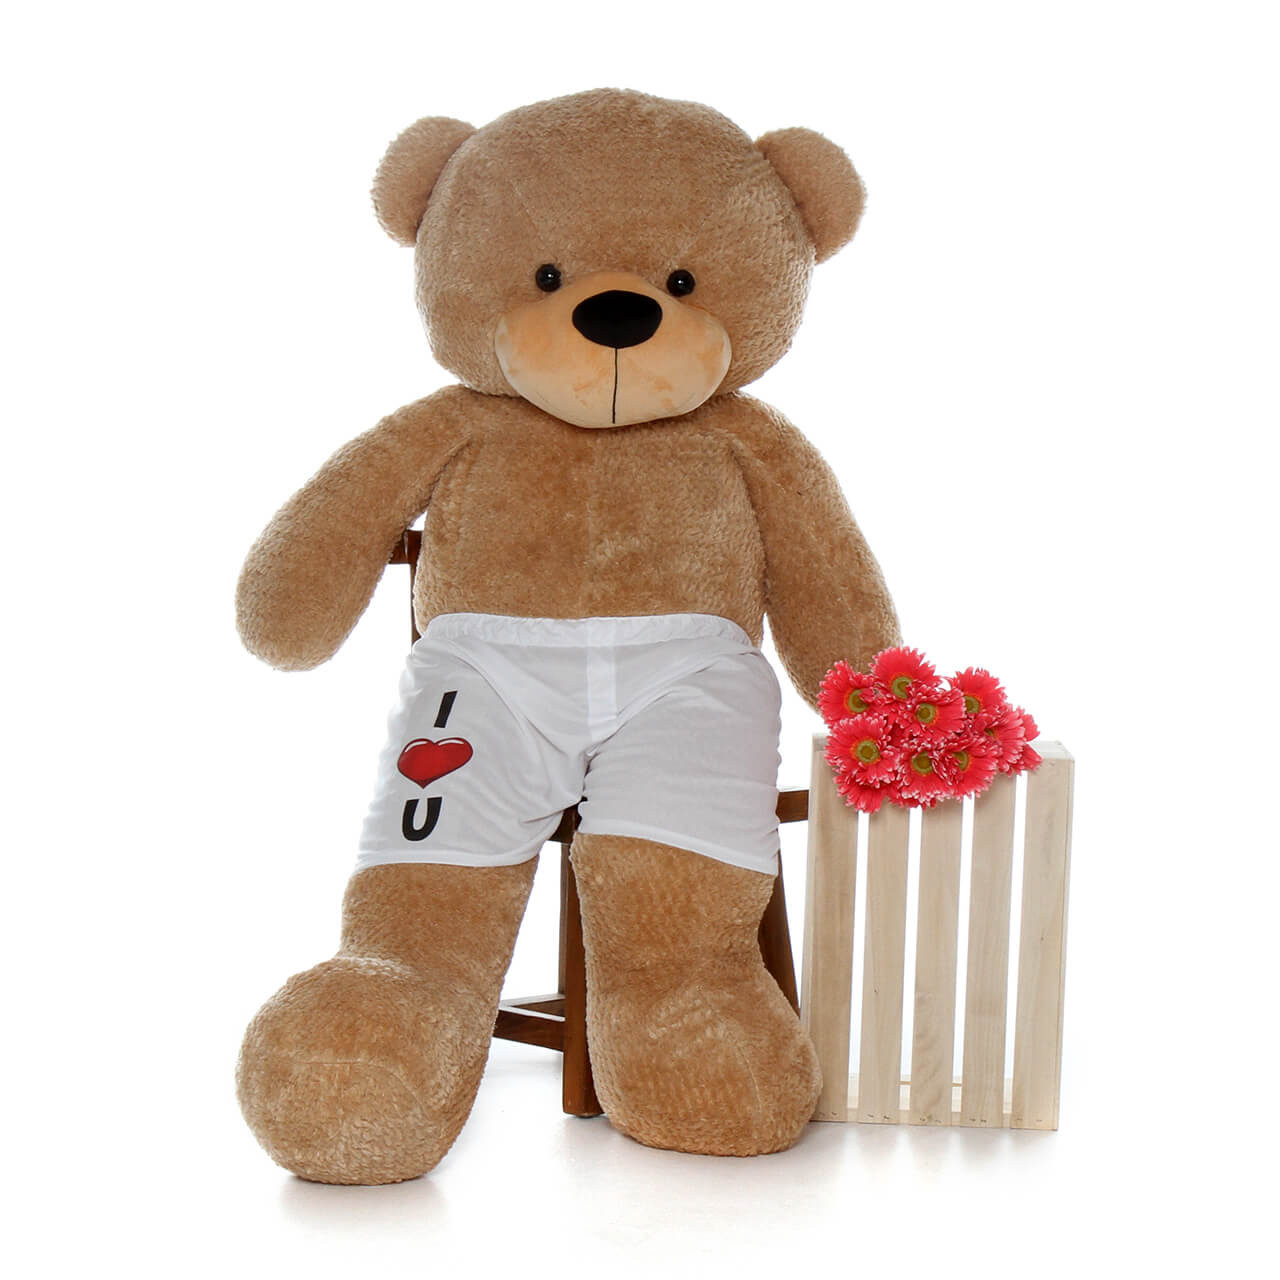 5 Foot Amber Brown Teddy Bear in Boxers - Perfect Gift for Girlfriend